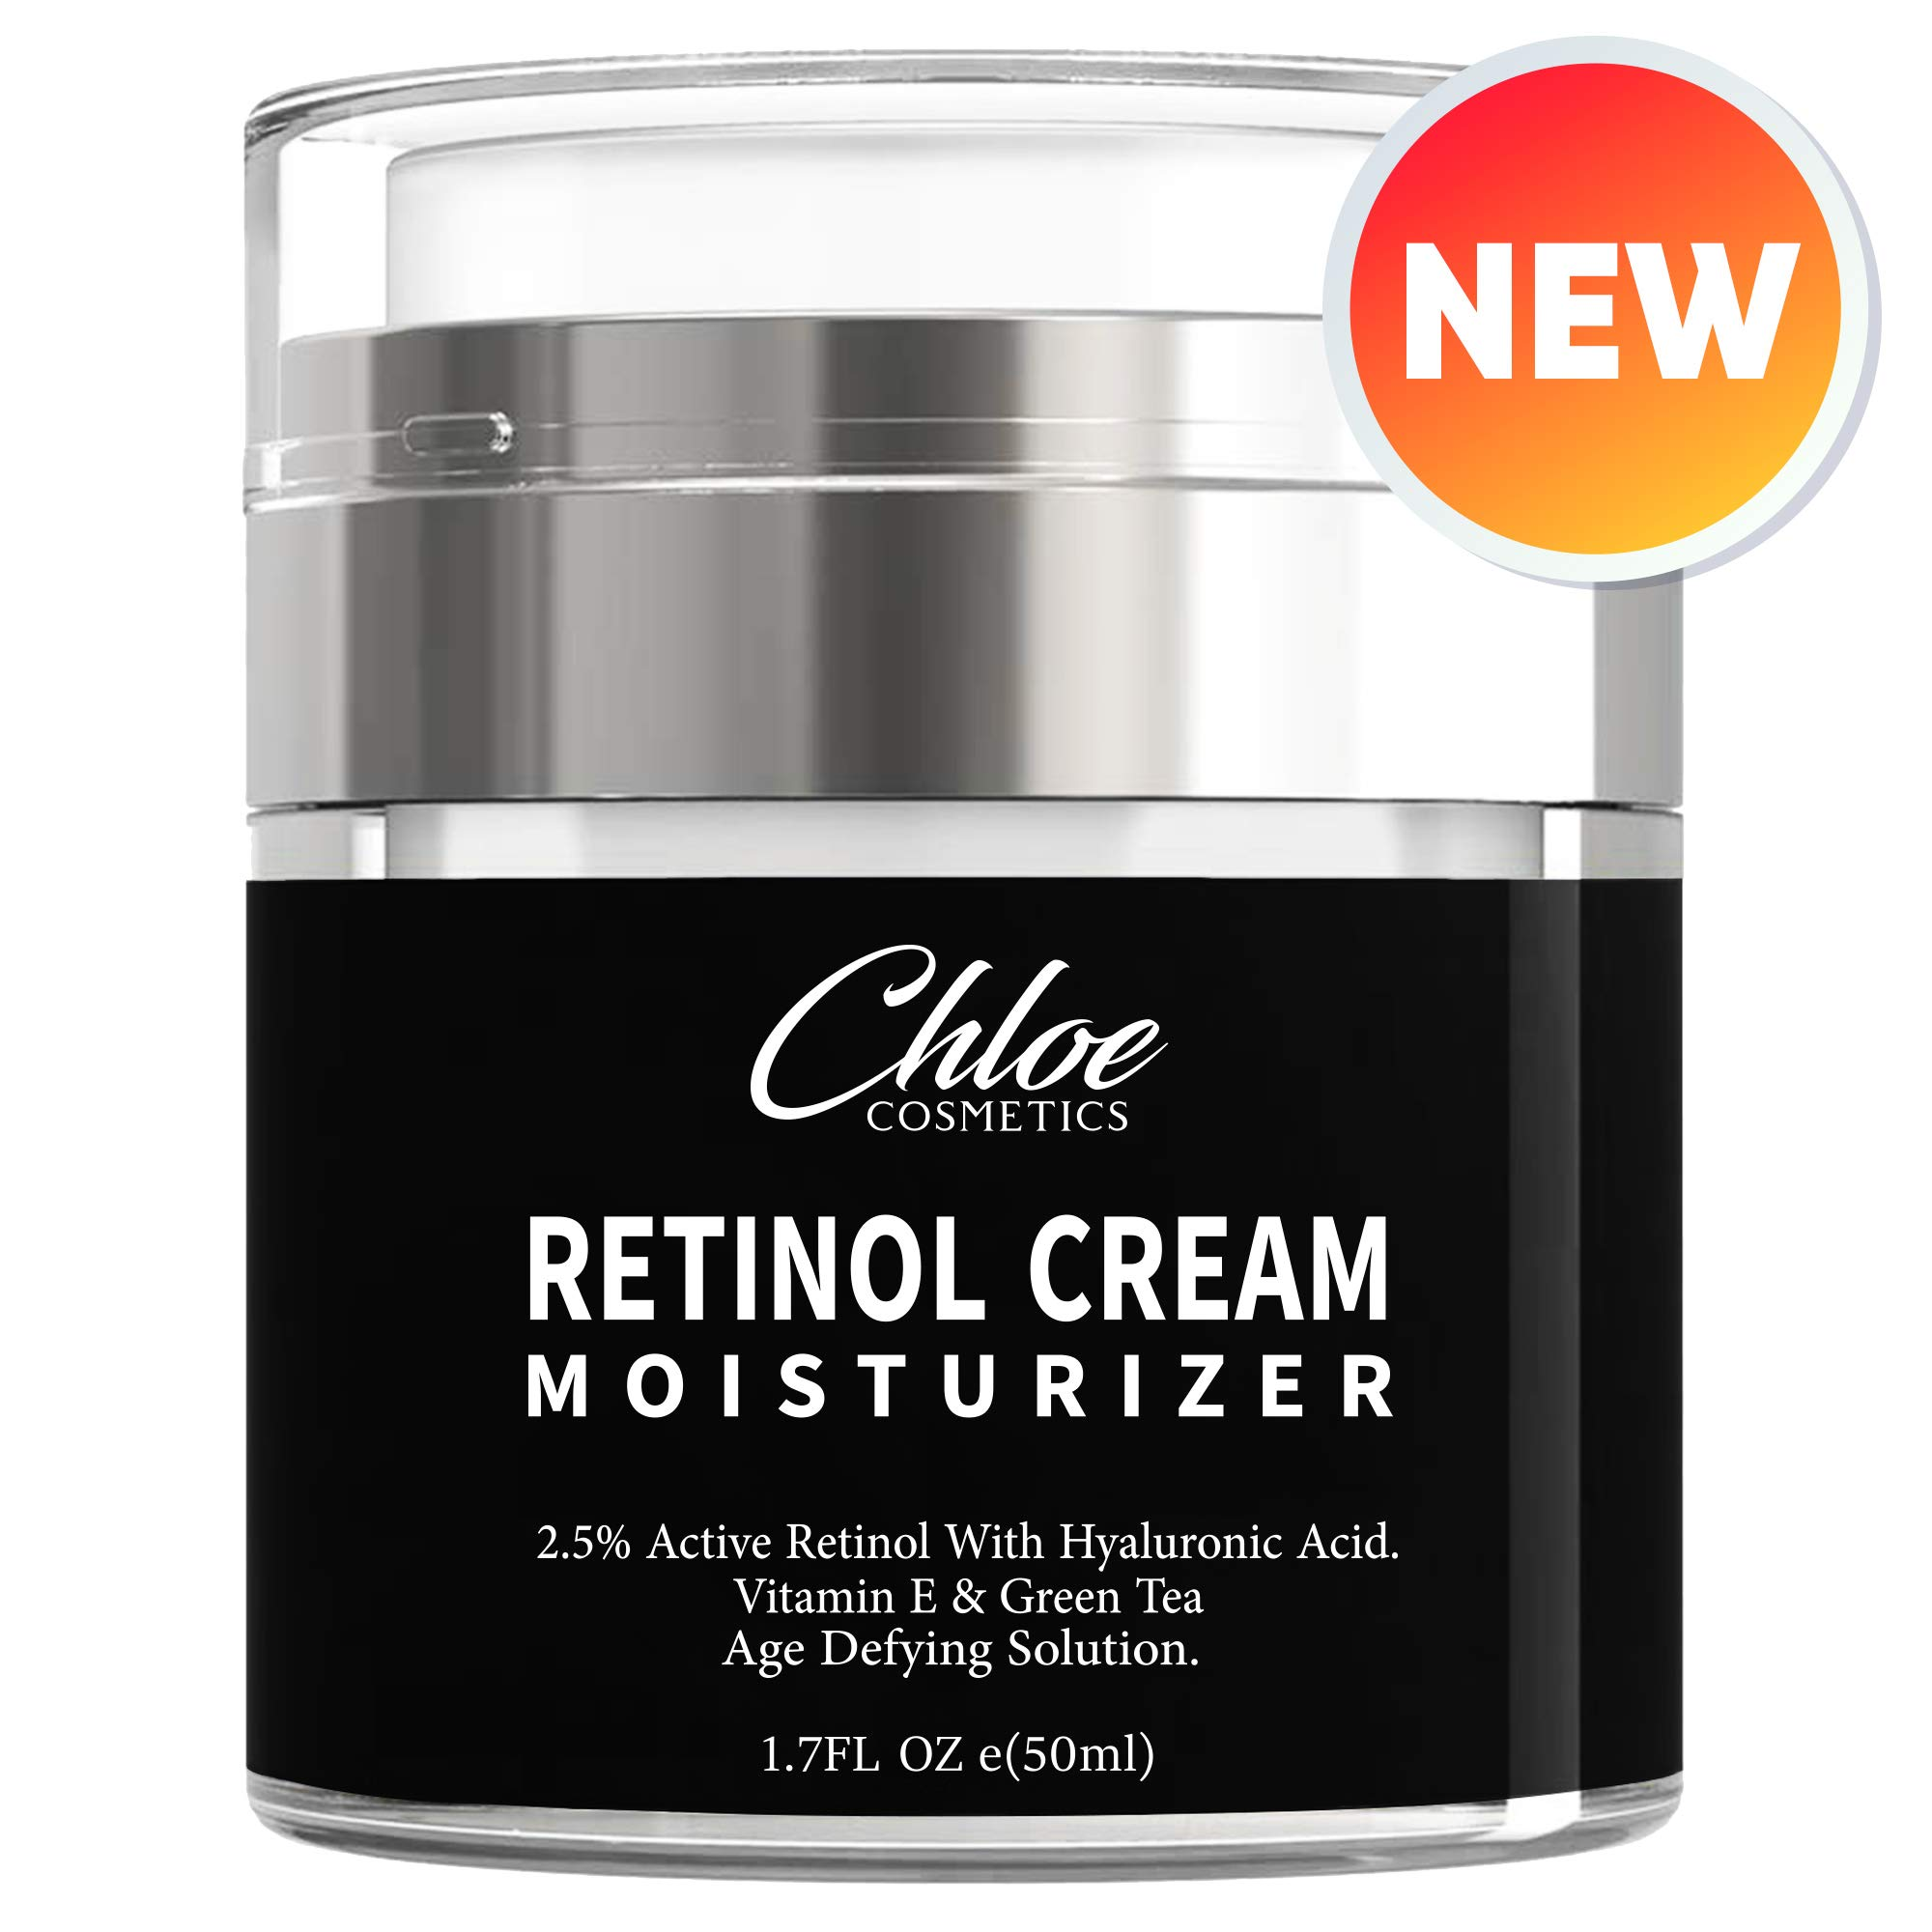 Retinol Moisturizer for Face and Eye area | Anti Aging Cream with Hyaluronic Acid, 2.5% Active Retinol and Vitamin E | Reduces Appearance of Wrinkles and Fine lines | Best Day and Night Face Cream by Chloe Cosmetics